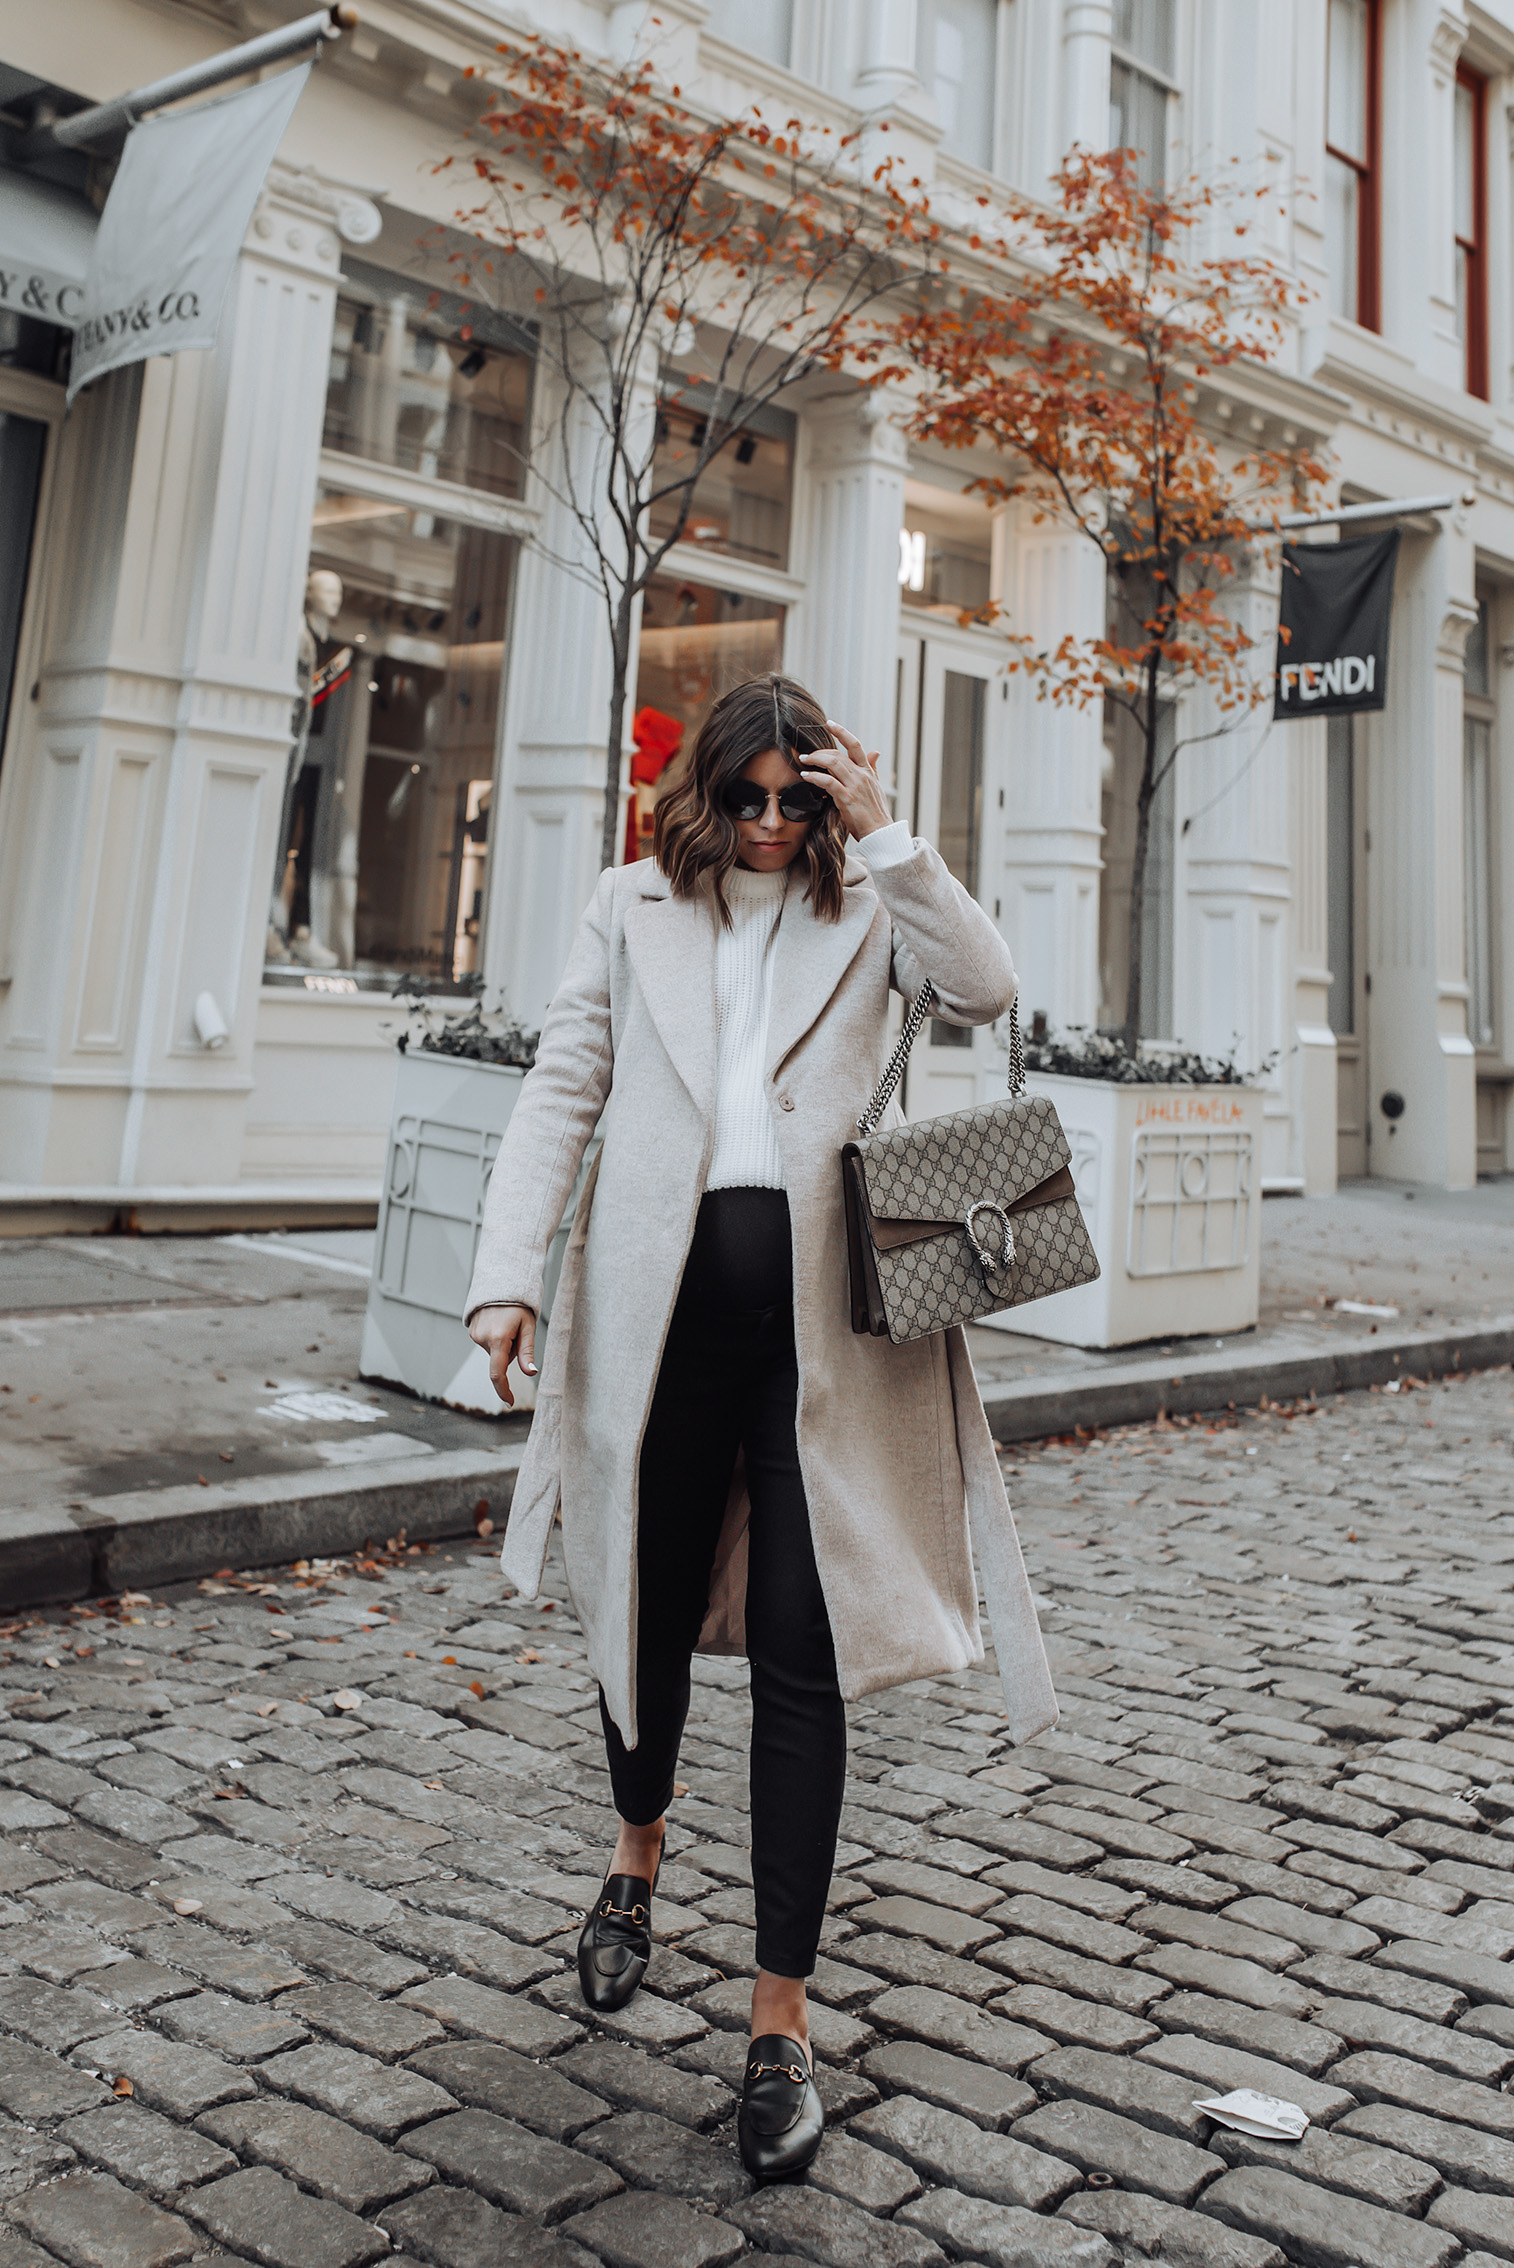 Neutral Tones |H&M Coat, Identical option here | Sweater | Gucci Bag | Gucci Princetown Shoes #gucci #liketkit #hm